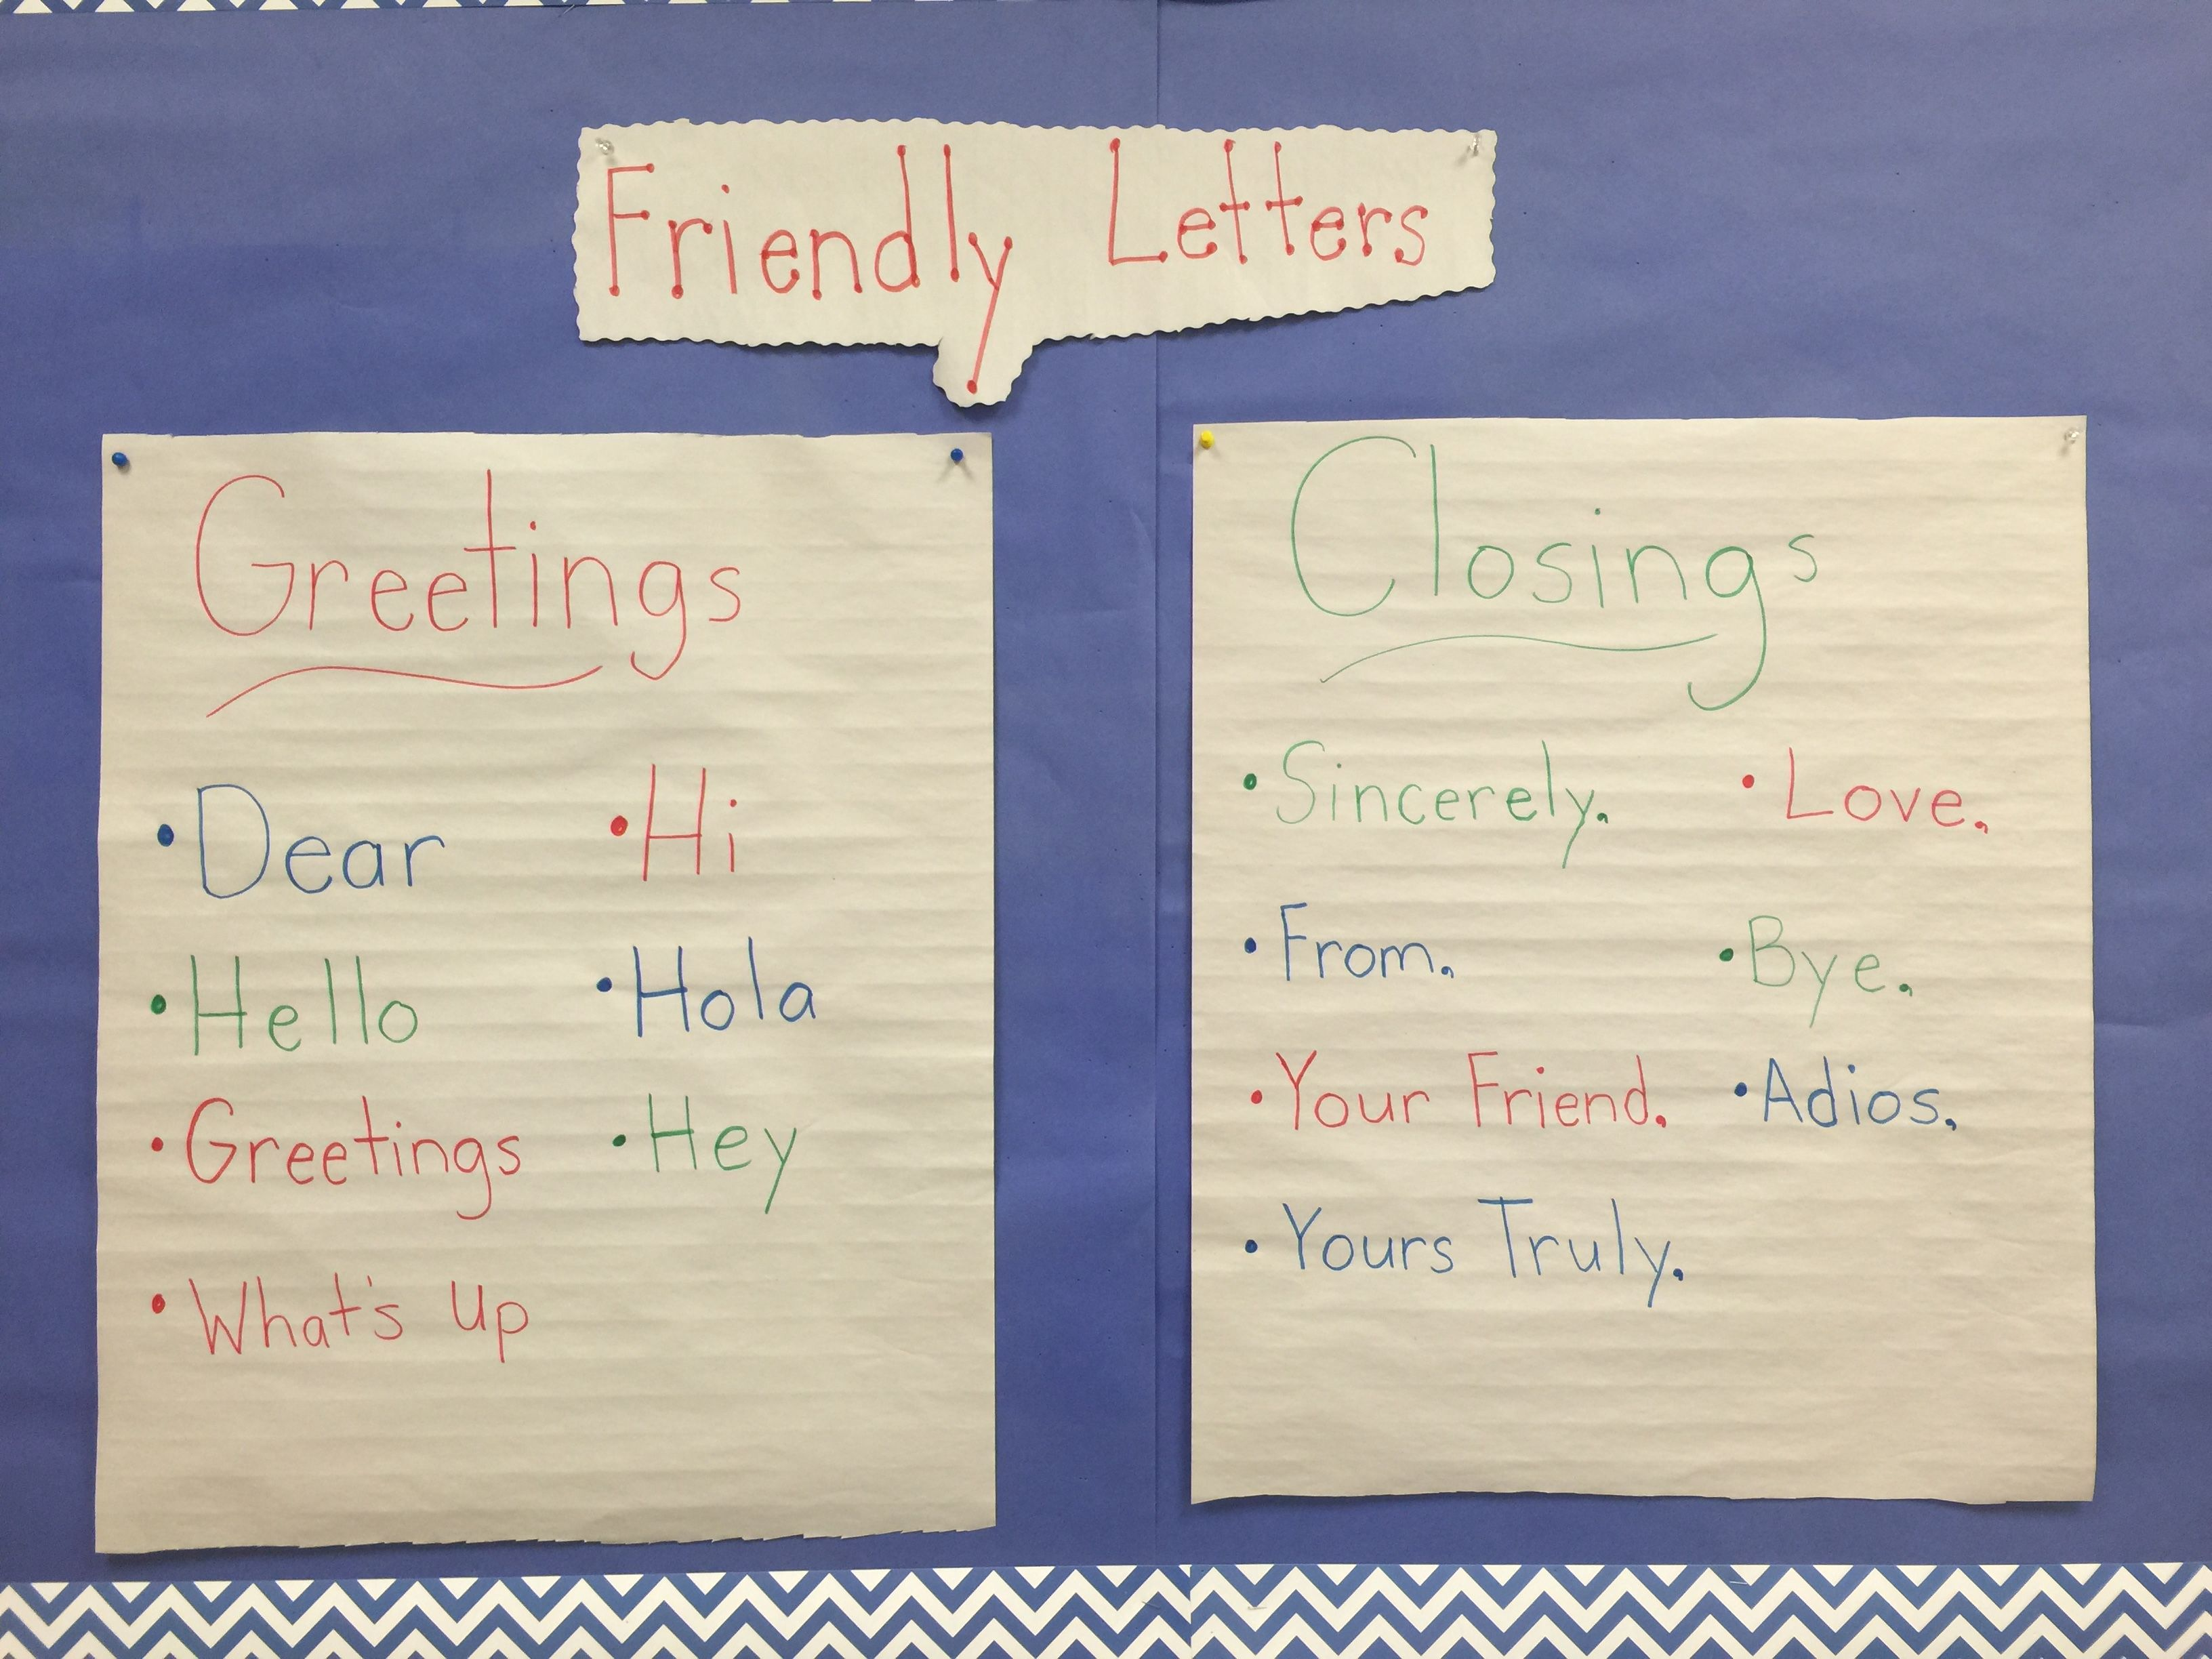 Friendly Letters Unit Greeting Closing  My Classroom